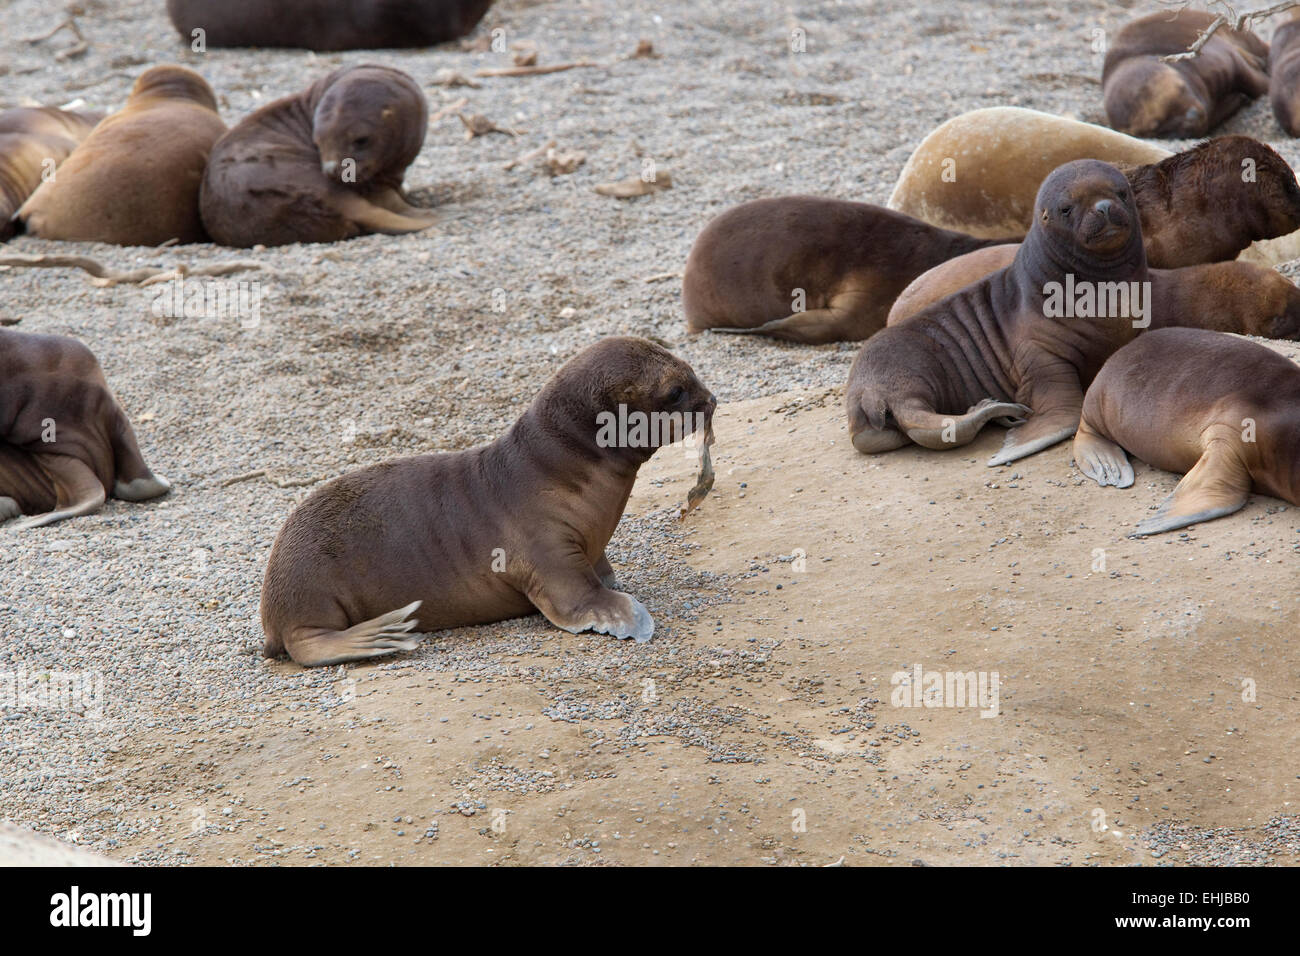 South American sea lion (Otaria flavescens) pups playing on beach of Punta Norte, Peninsula Valdes, Patagonia, Argentina - Stock Image